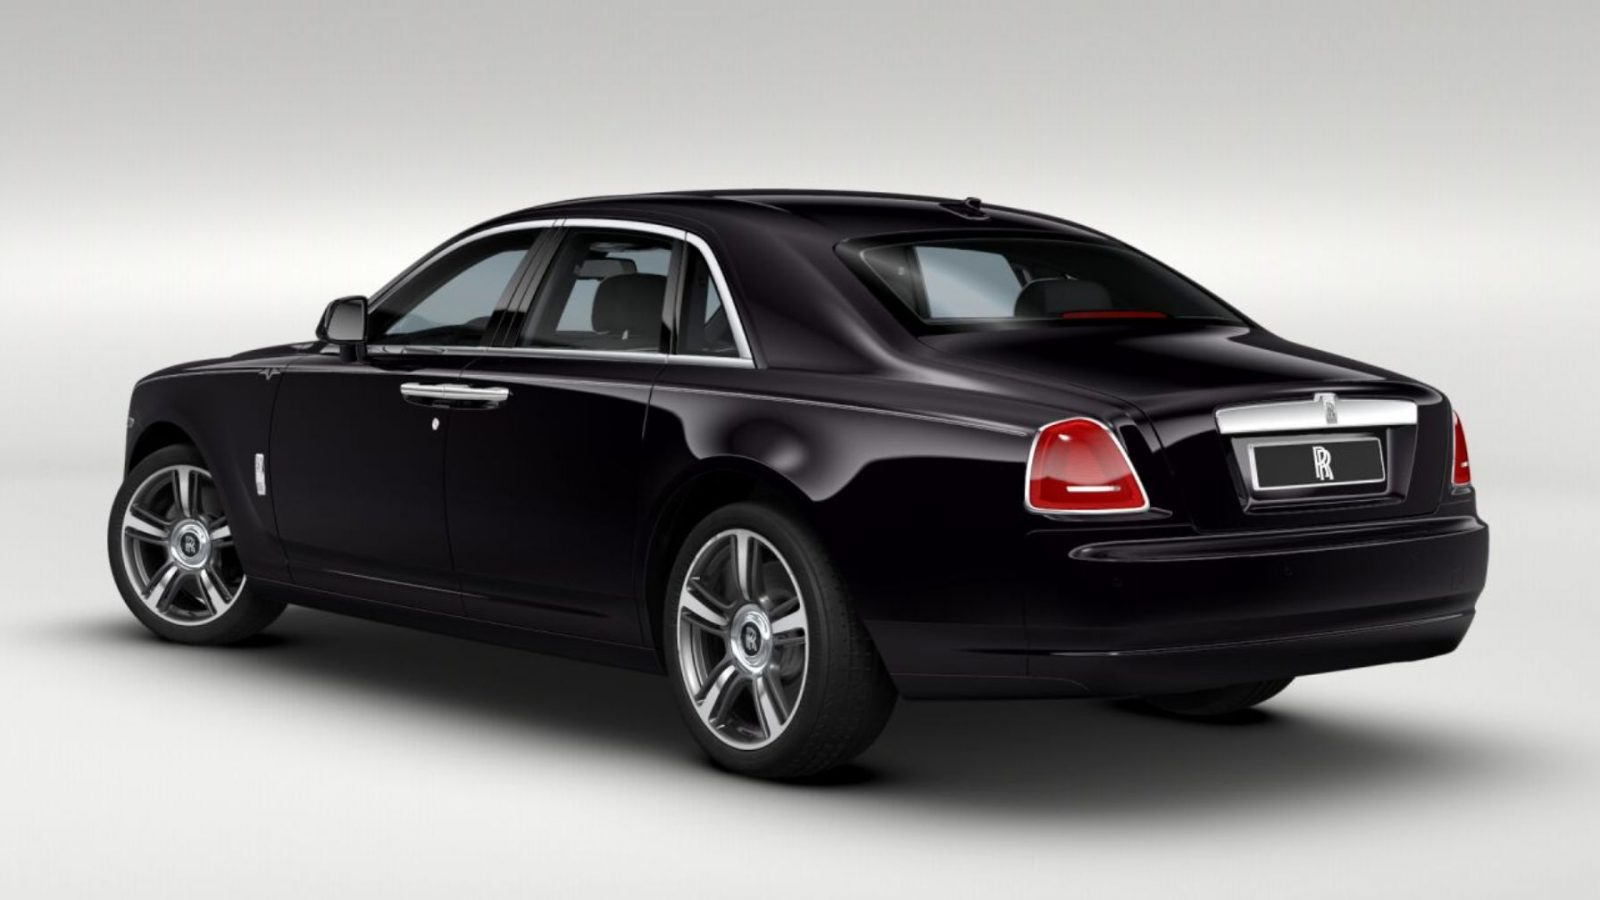 2014 Rolls Royce Ghost V Spec Adds Power Dark Glamour To